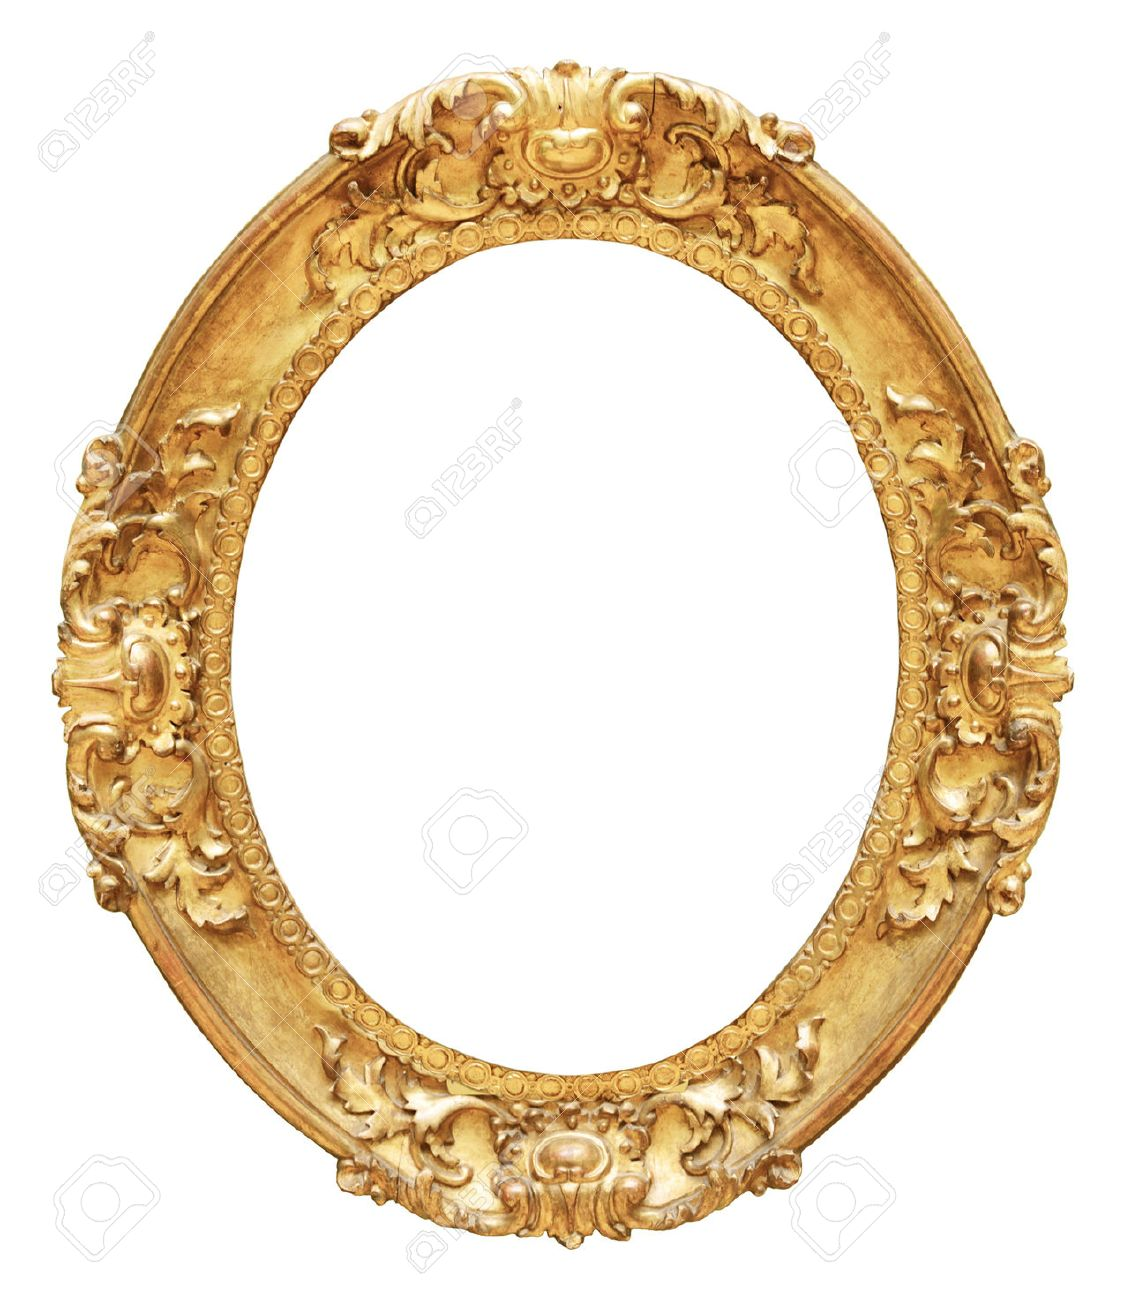 Phantasy G Vintage Oval Frame Isolated On Background Stock Photo G Vintage Oval Frame Isolated On Background Stock Photo Oval Frame Sizes Oval Frames 16x20 houzz-03 Oval Picture Frame